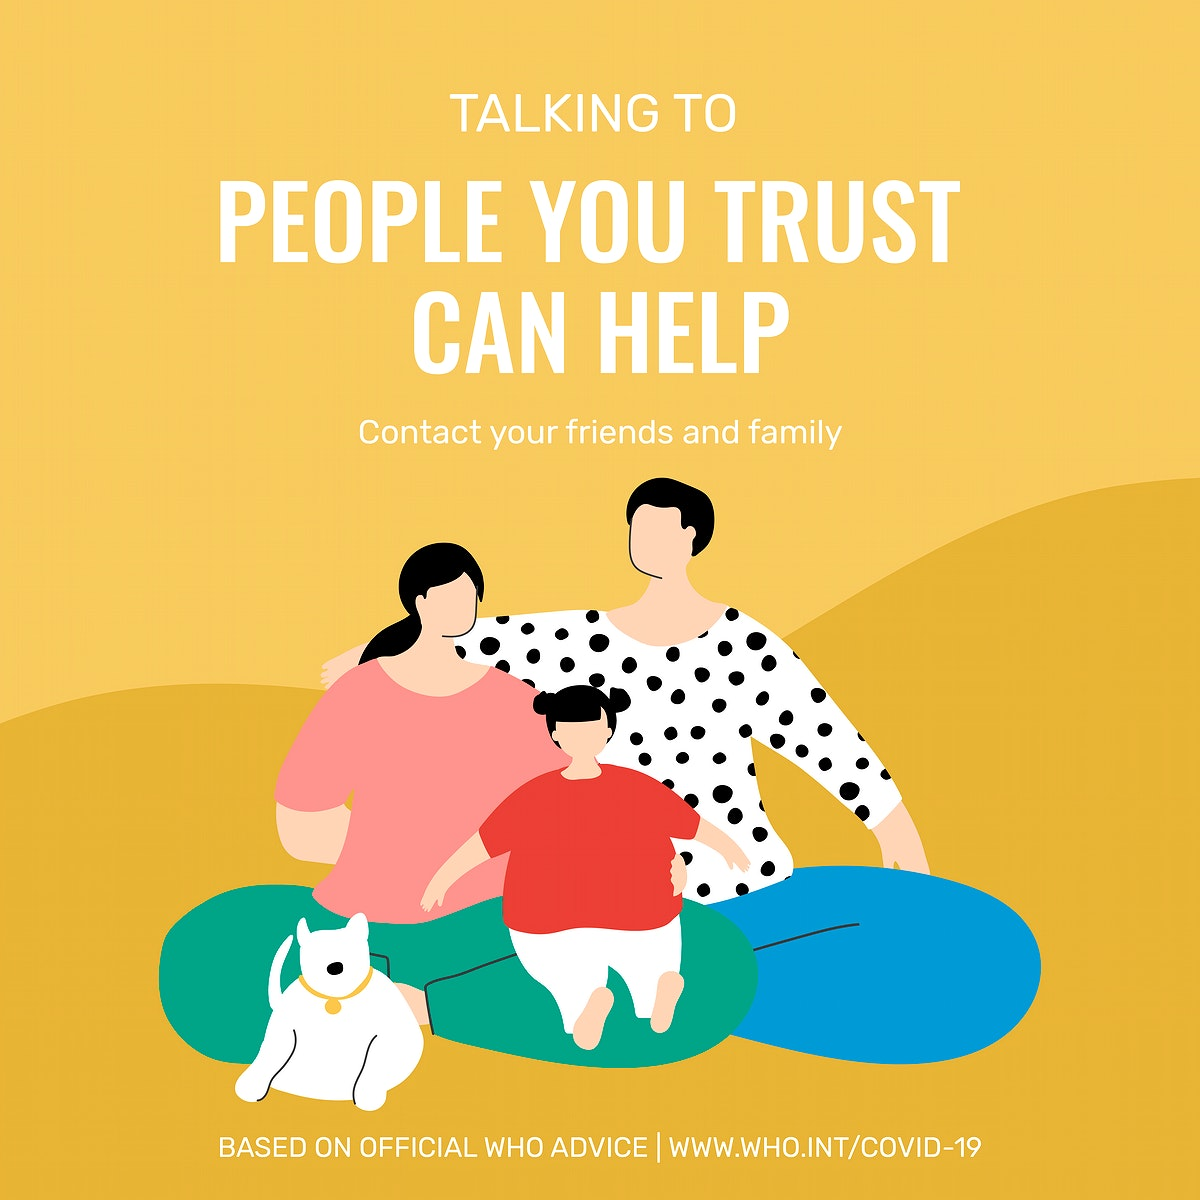 Talking to people you trust during coronavirus outbreak social template source WHO vector